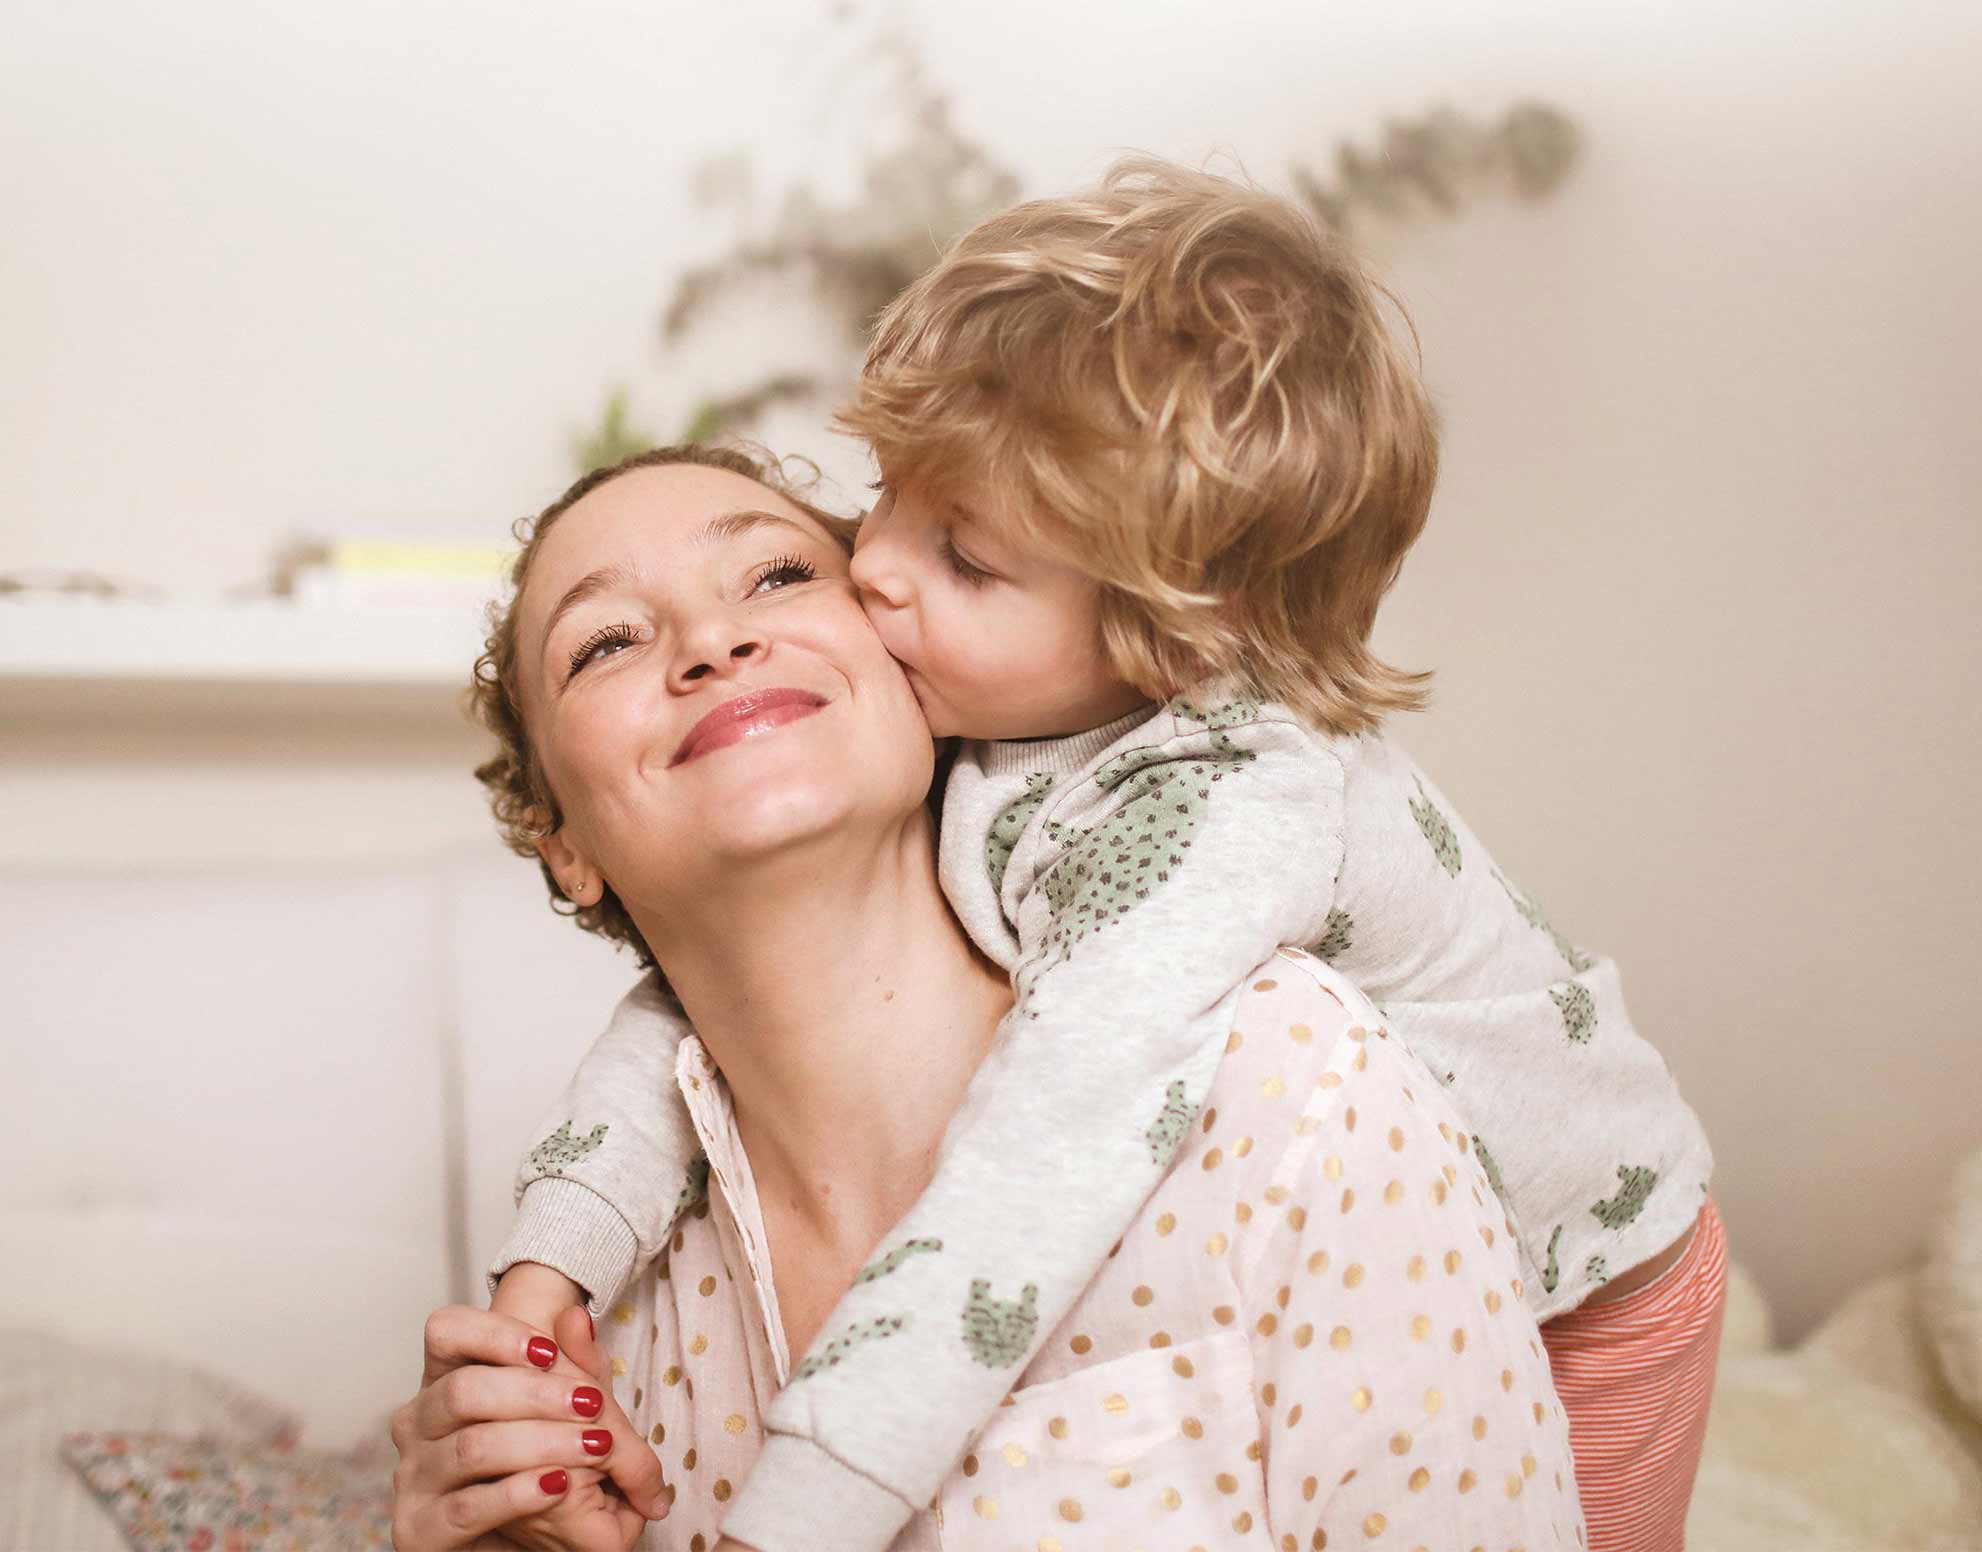 Woman and child hugging